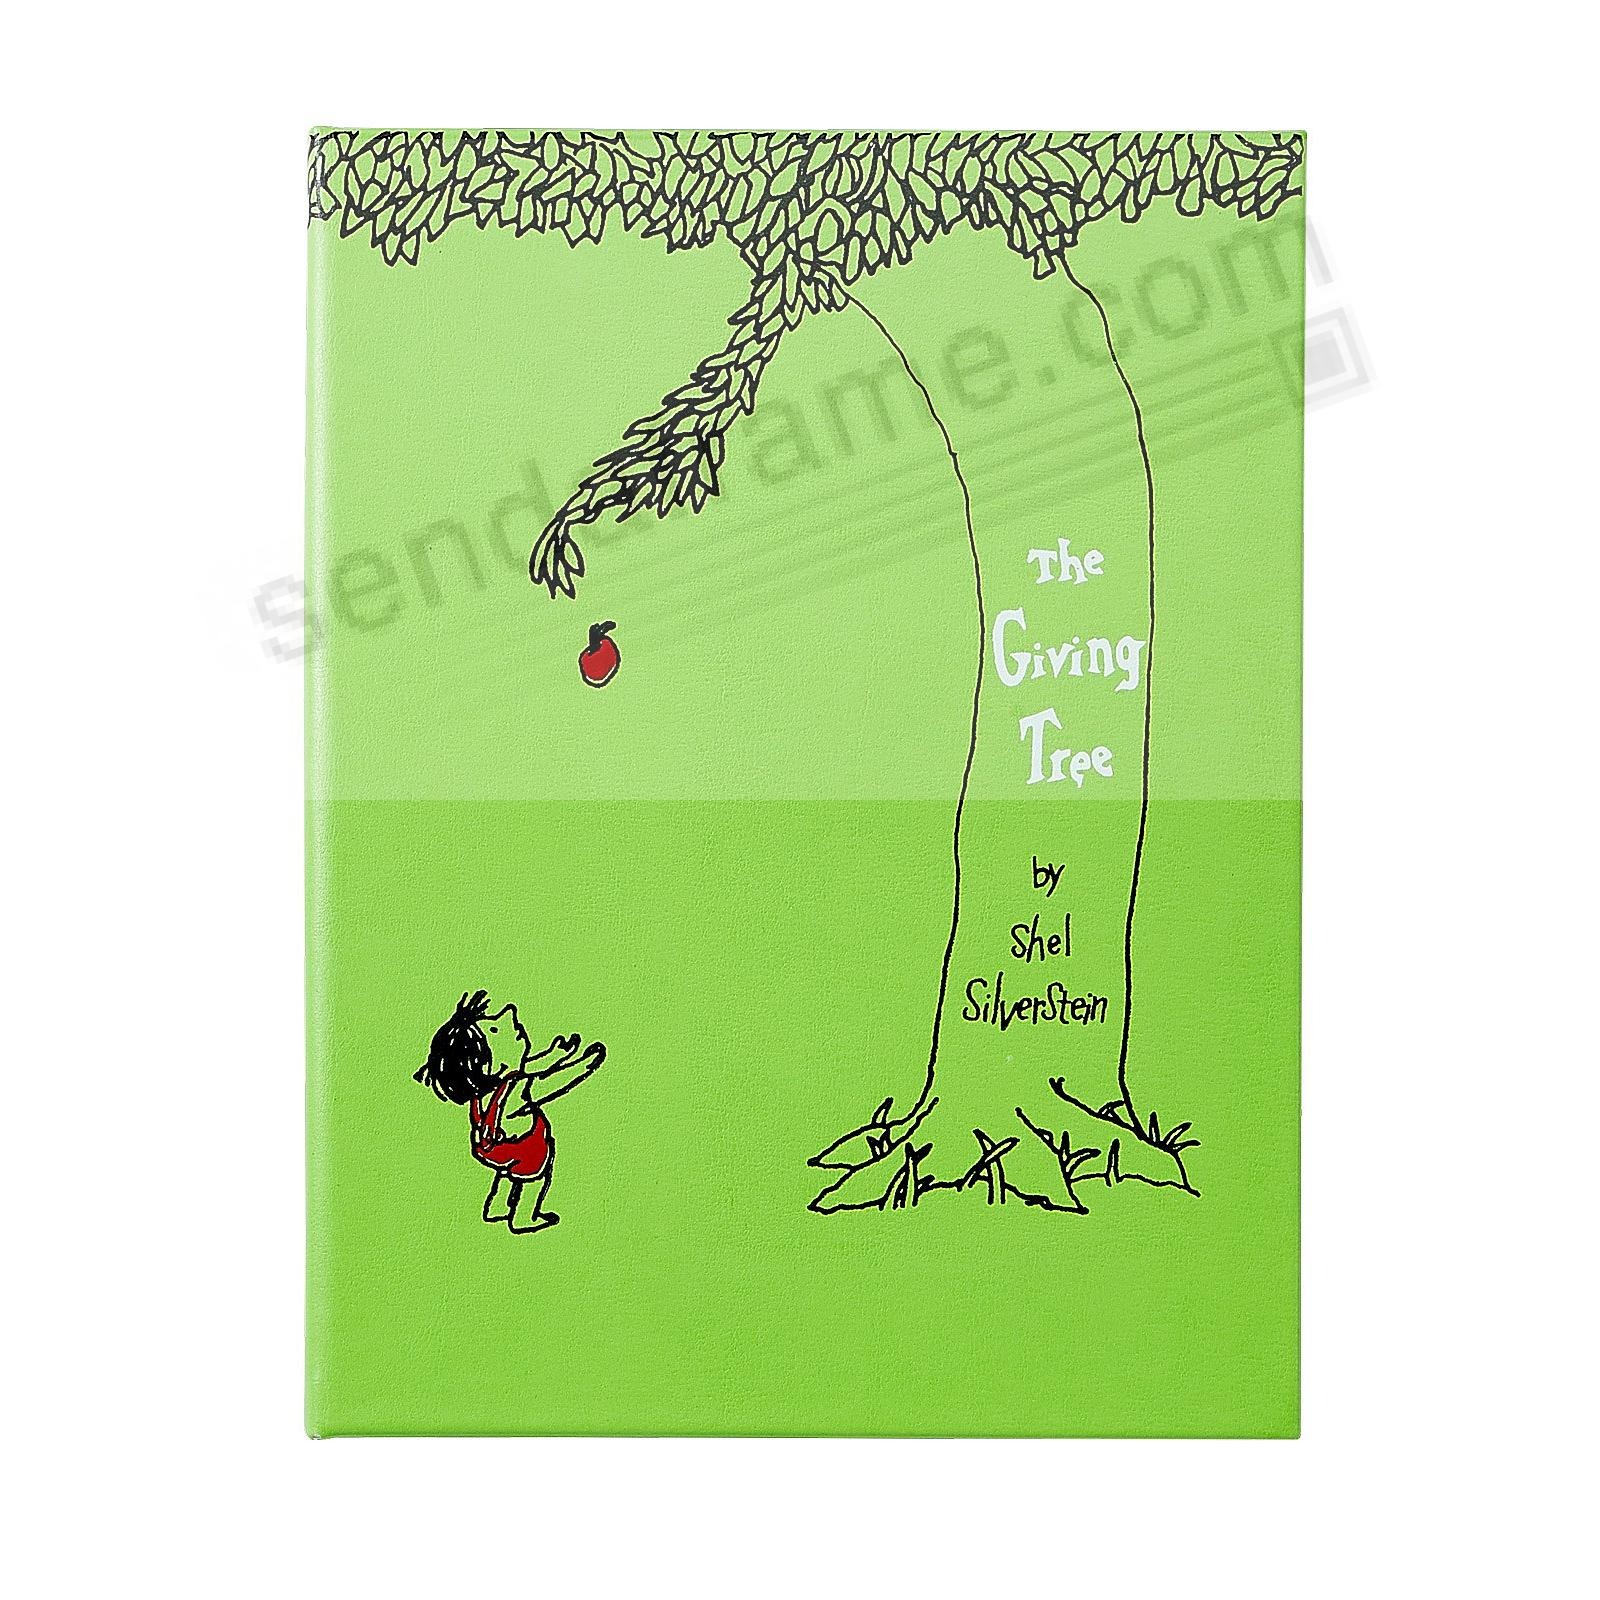 THE GIVING TREE by Shel Silverstein In Hand-Tooled Leather